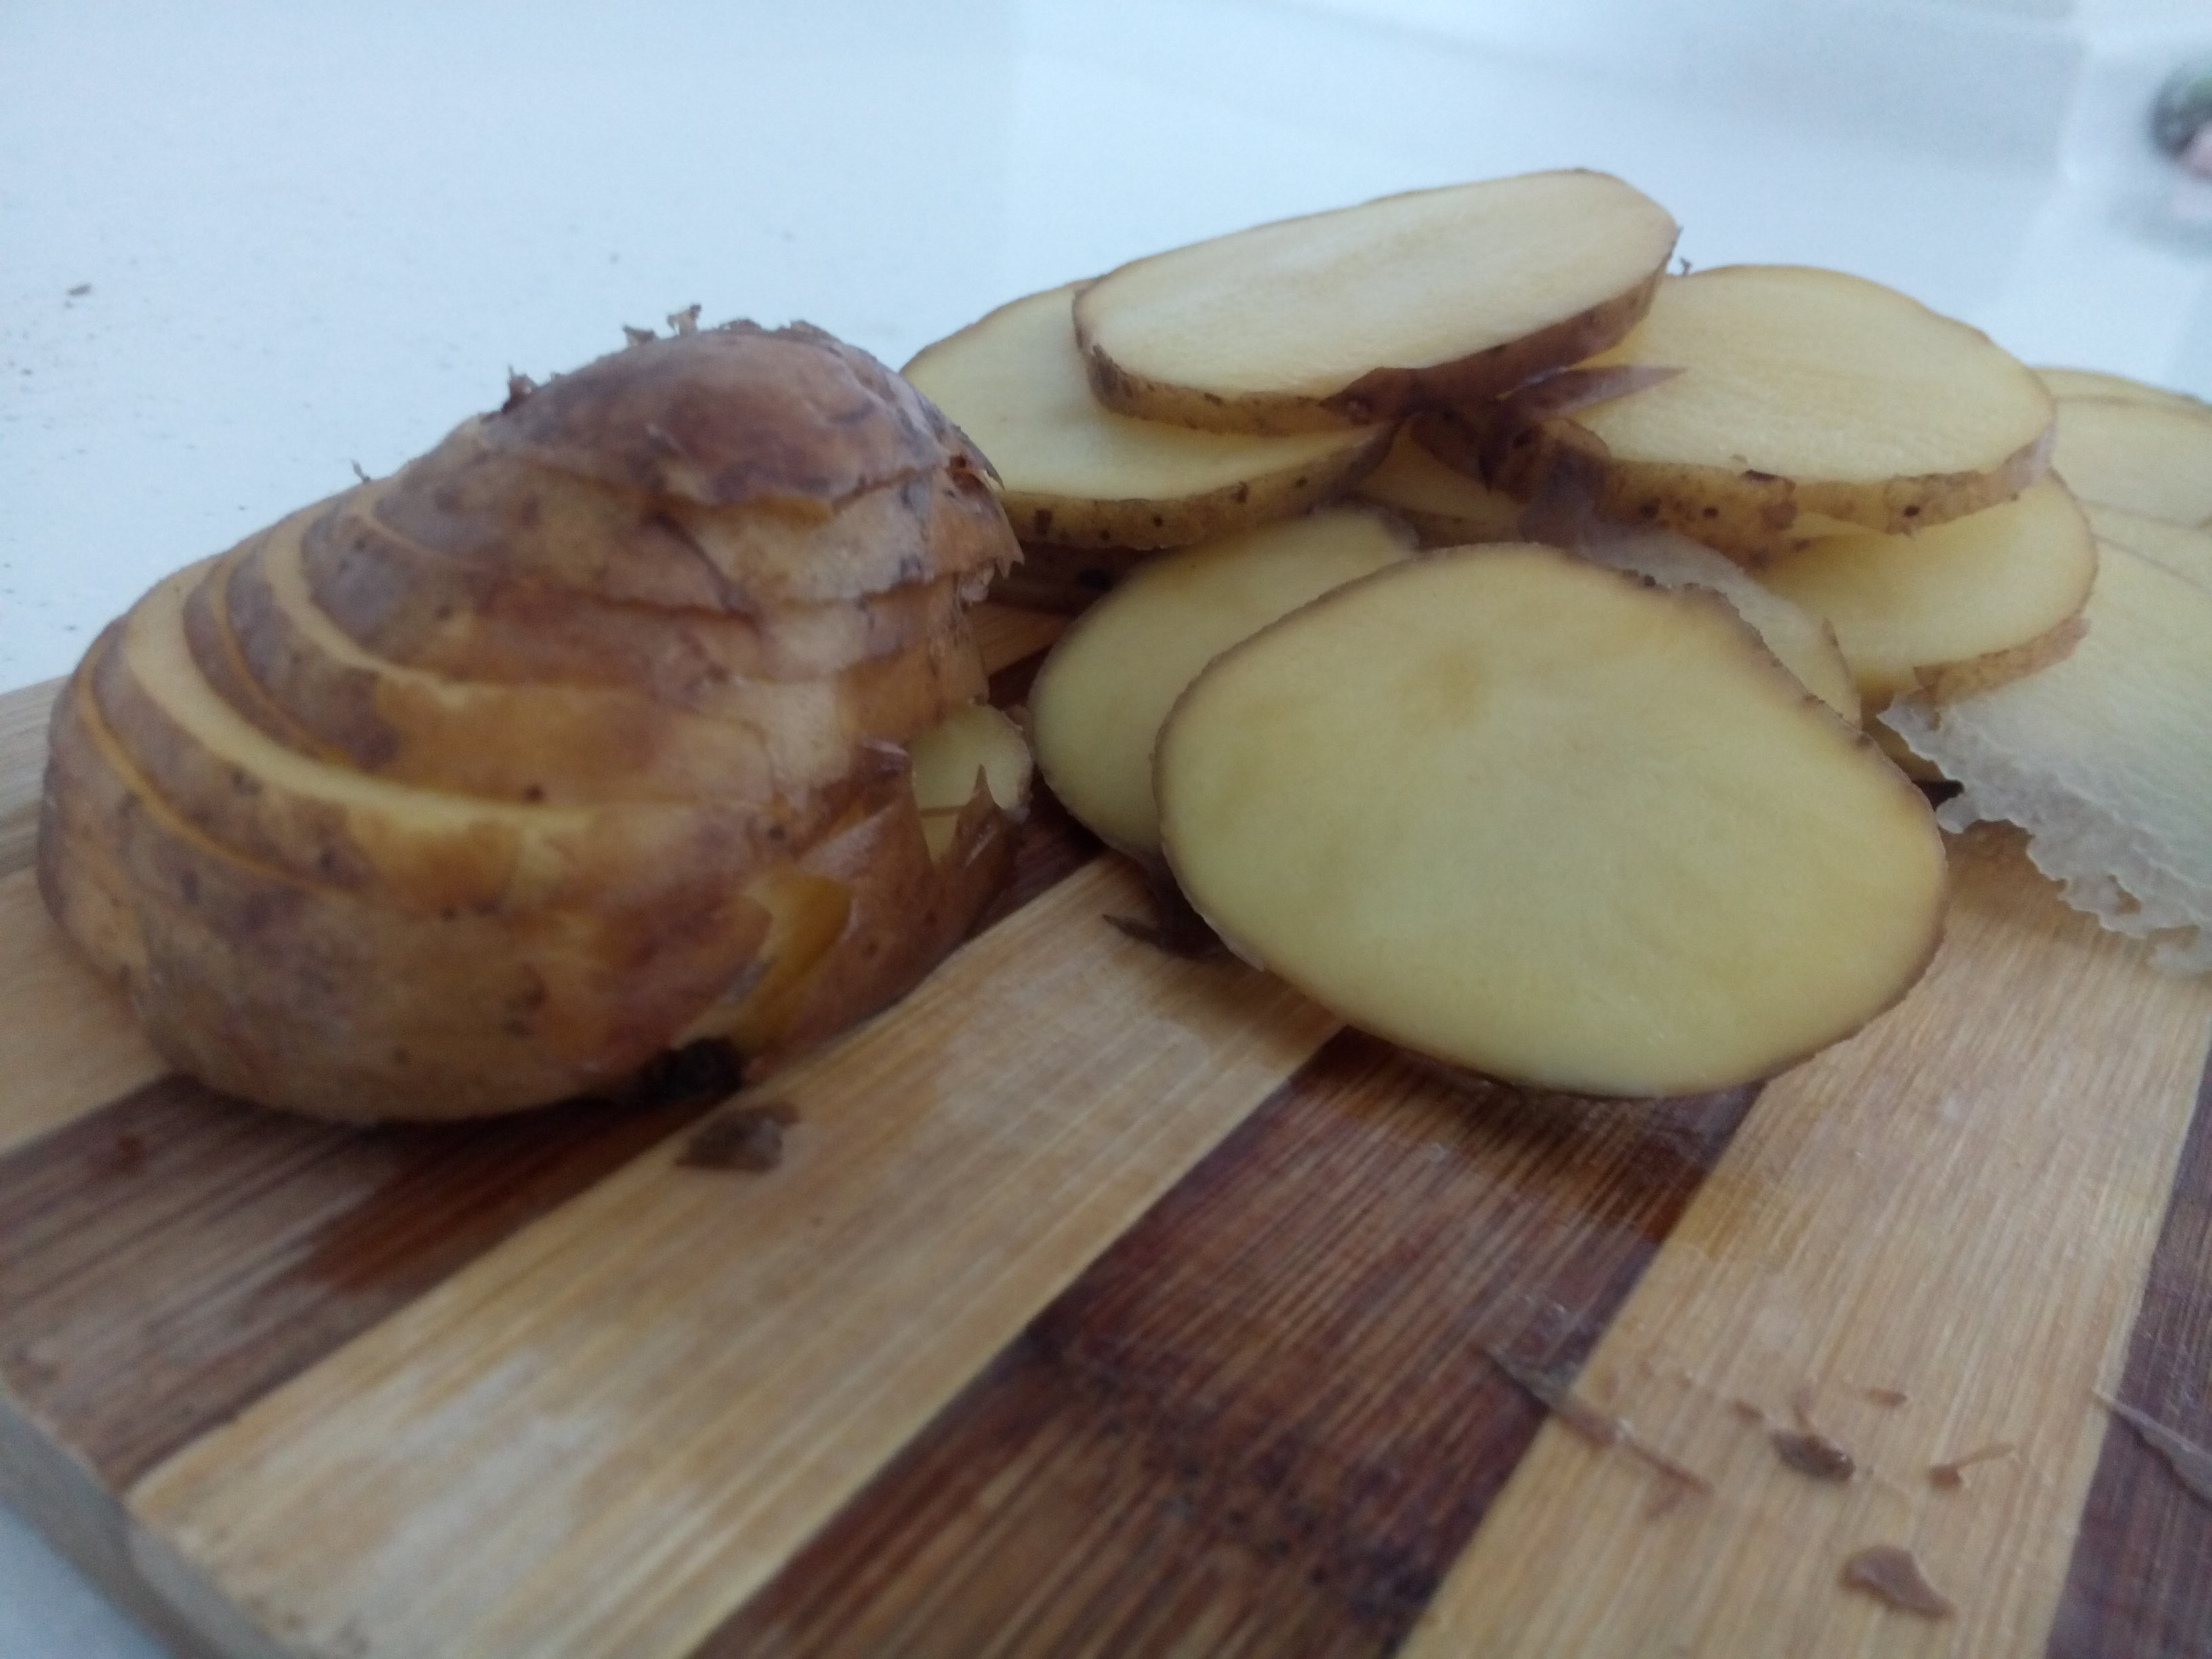 Sliced potato on a wooden chopping board